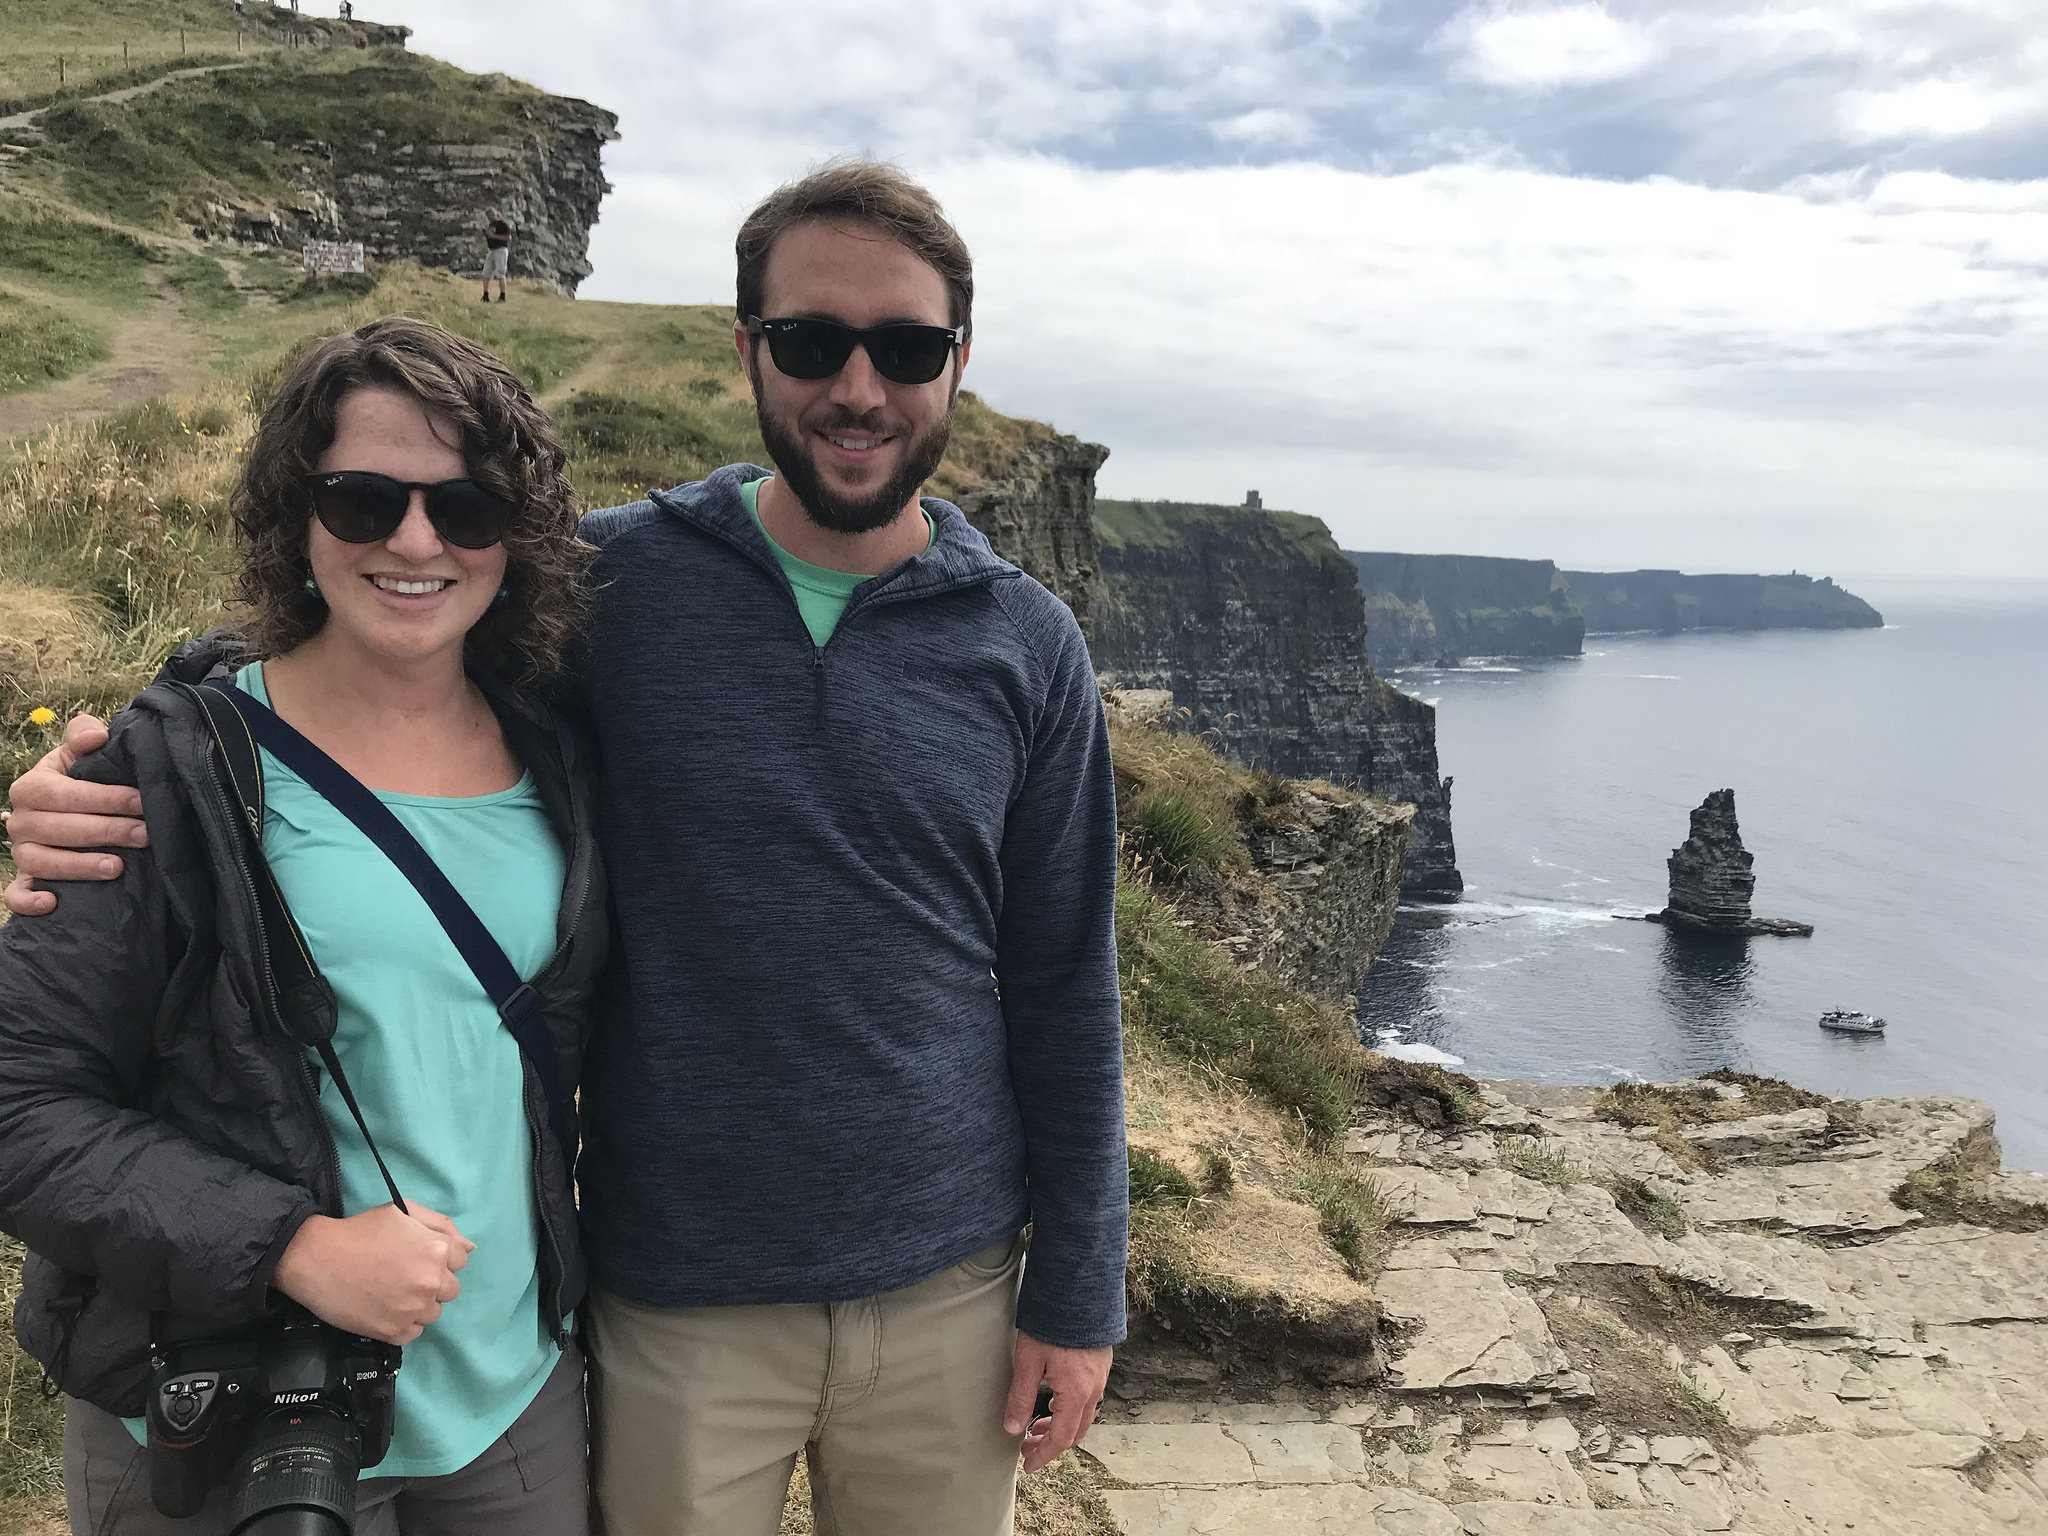 Heather and Dan at Cliffs of Moher